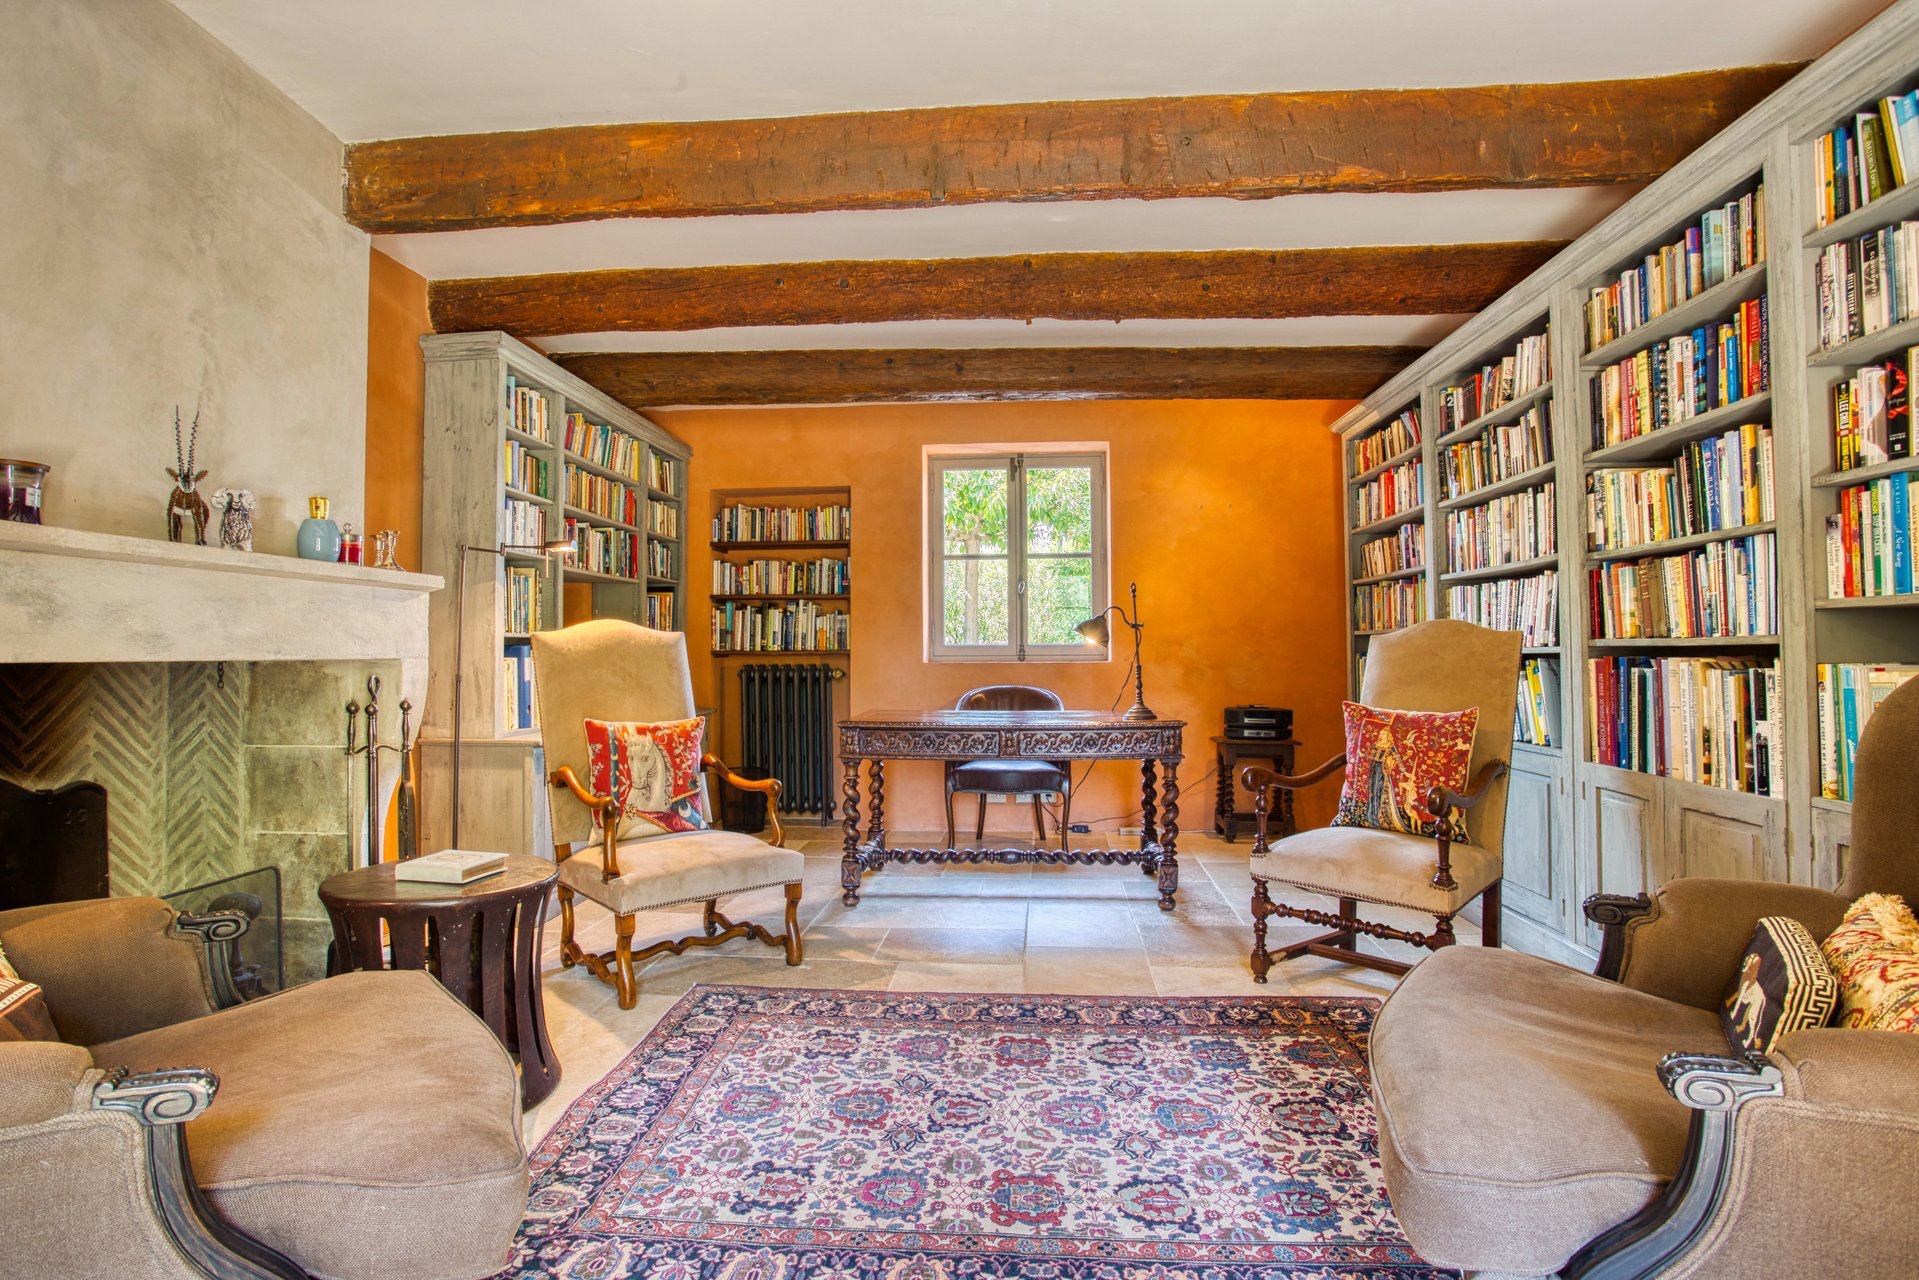 traditional medieval library office with grand fireplace